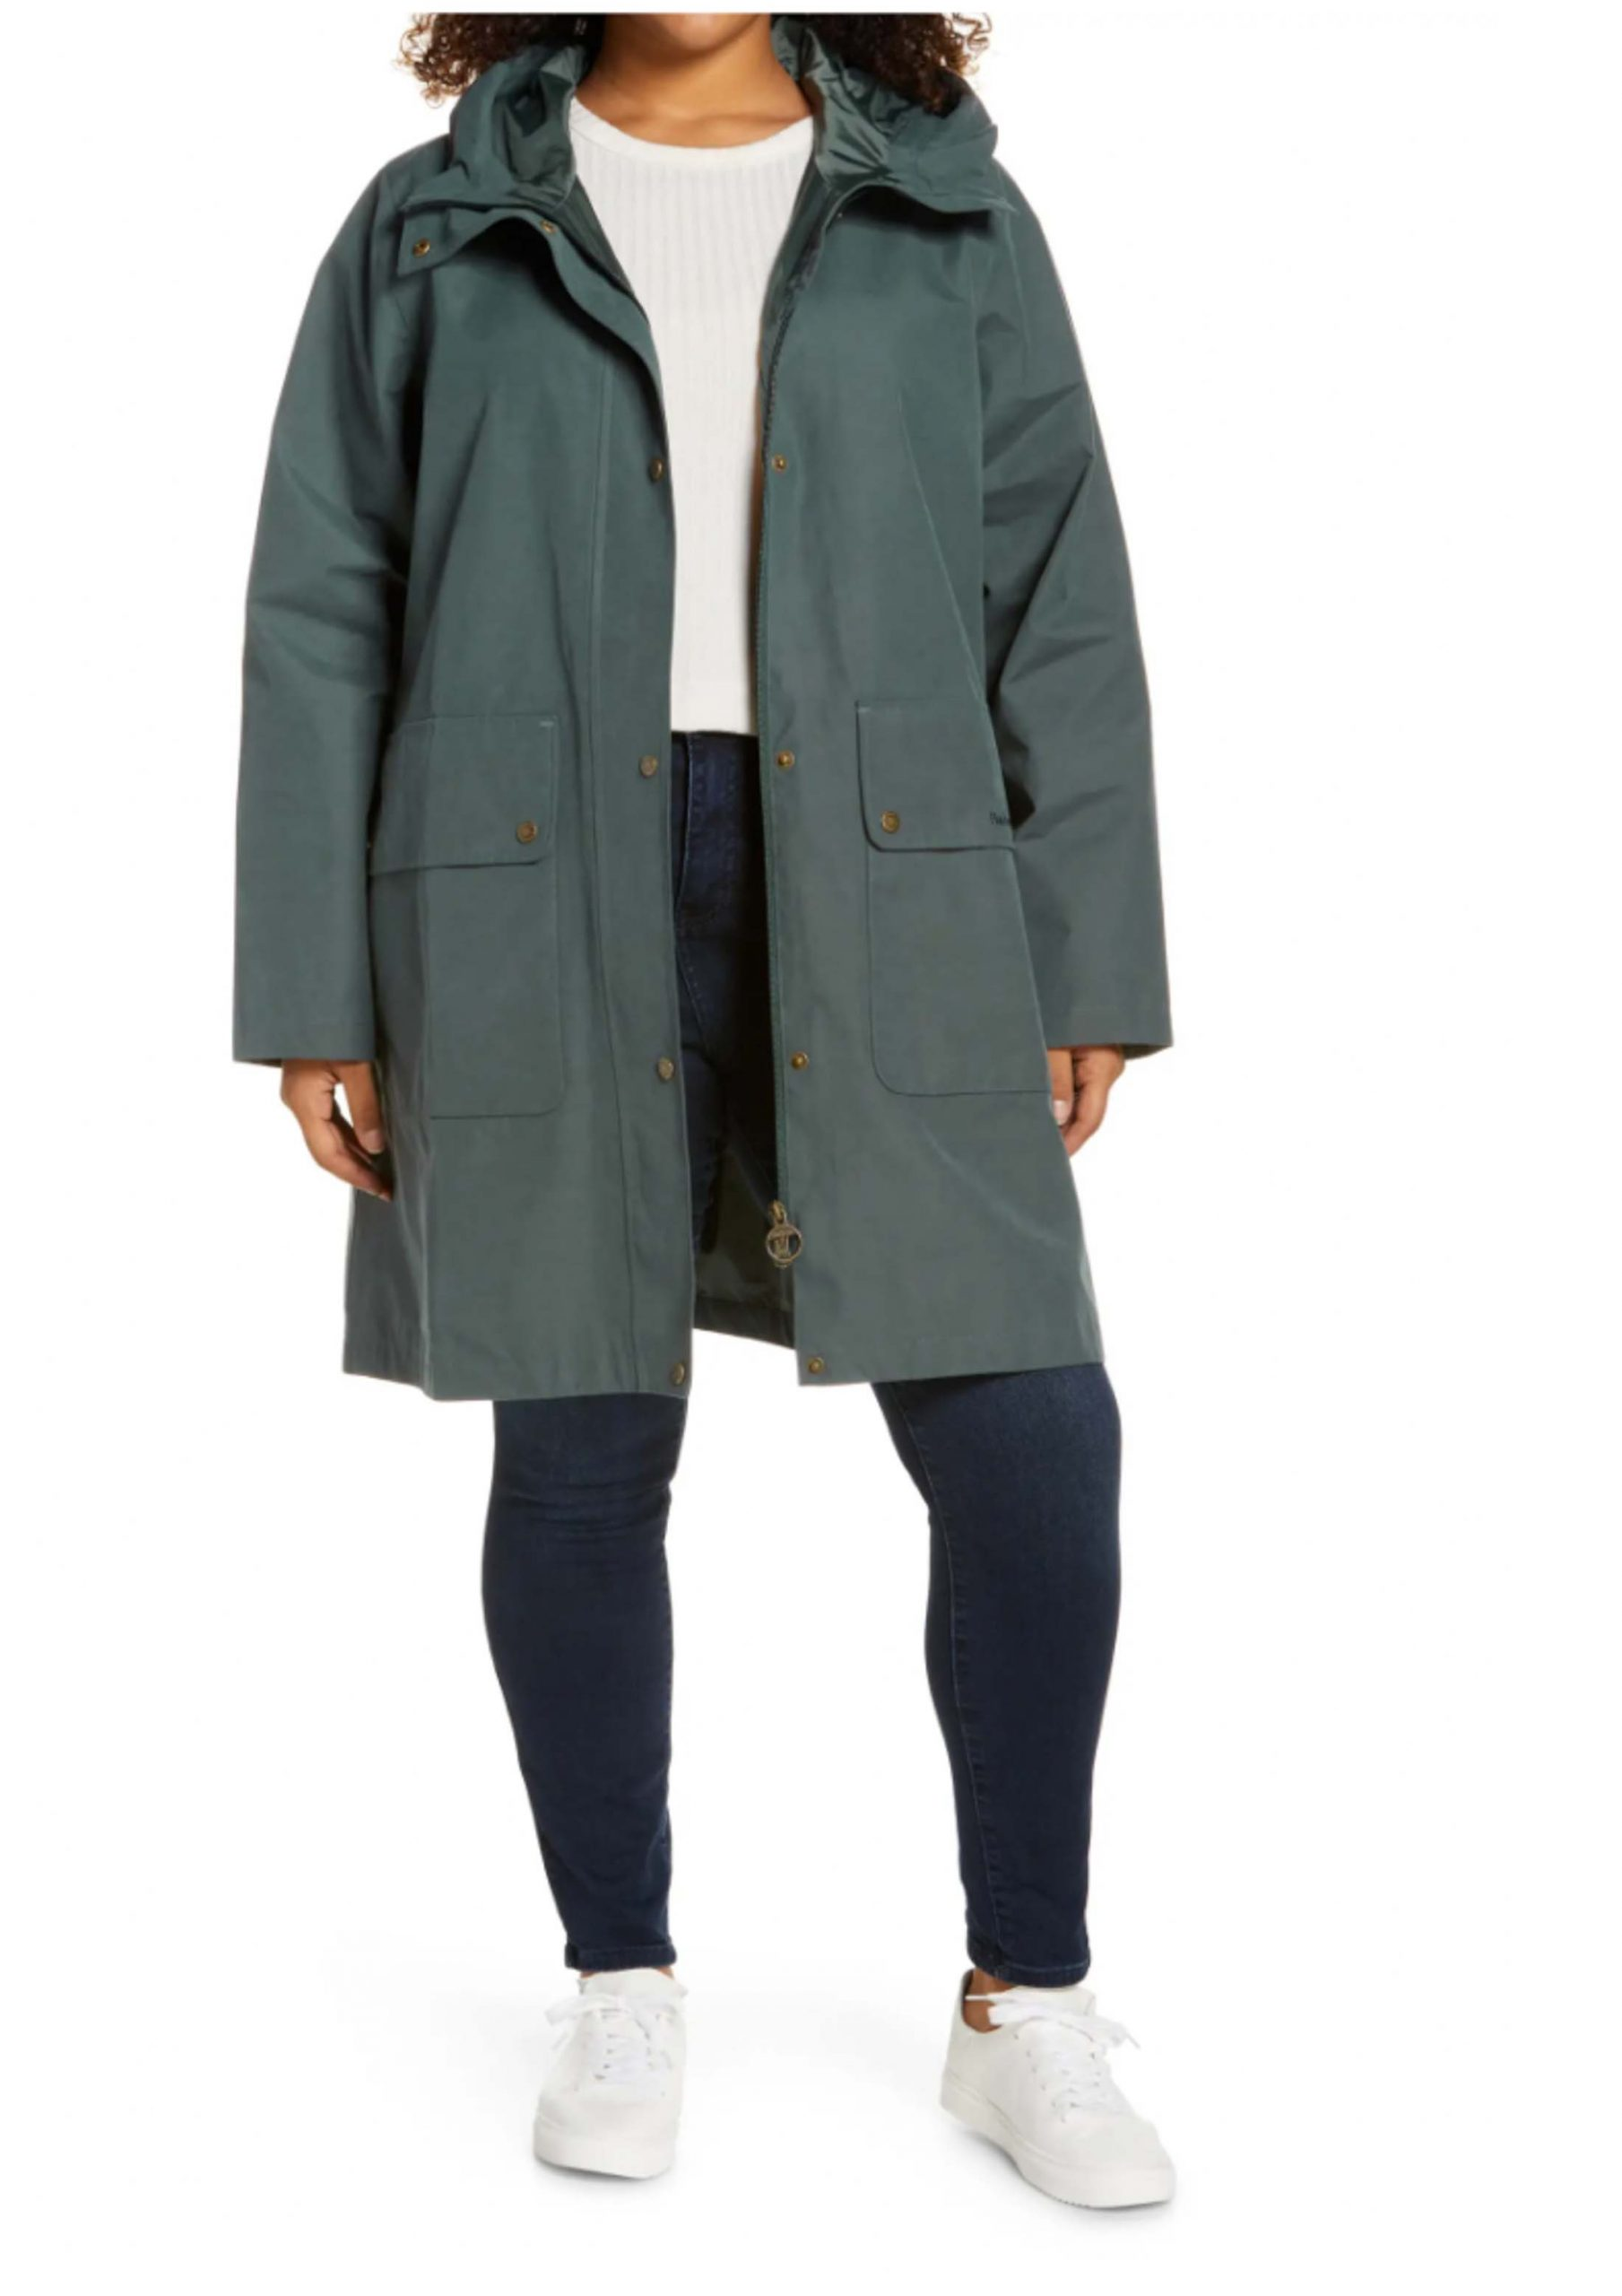 I love the quality of Barbour jackets and the Ashover hooded raincoat is sleek and in the color of my dreams.